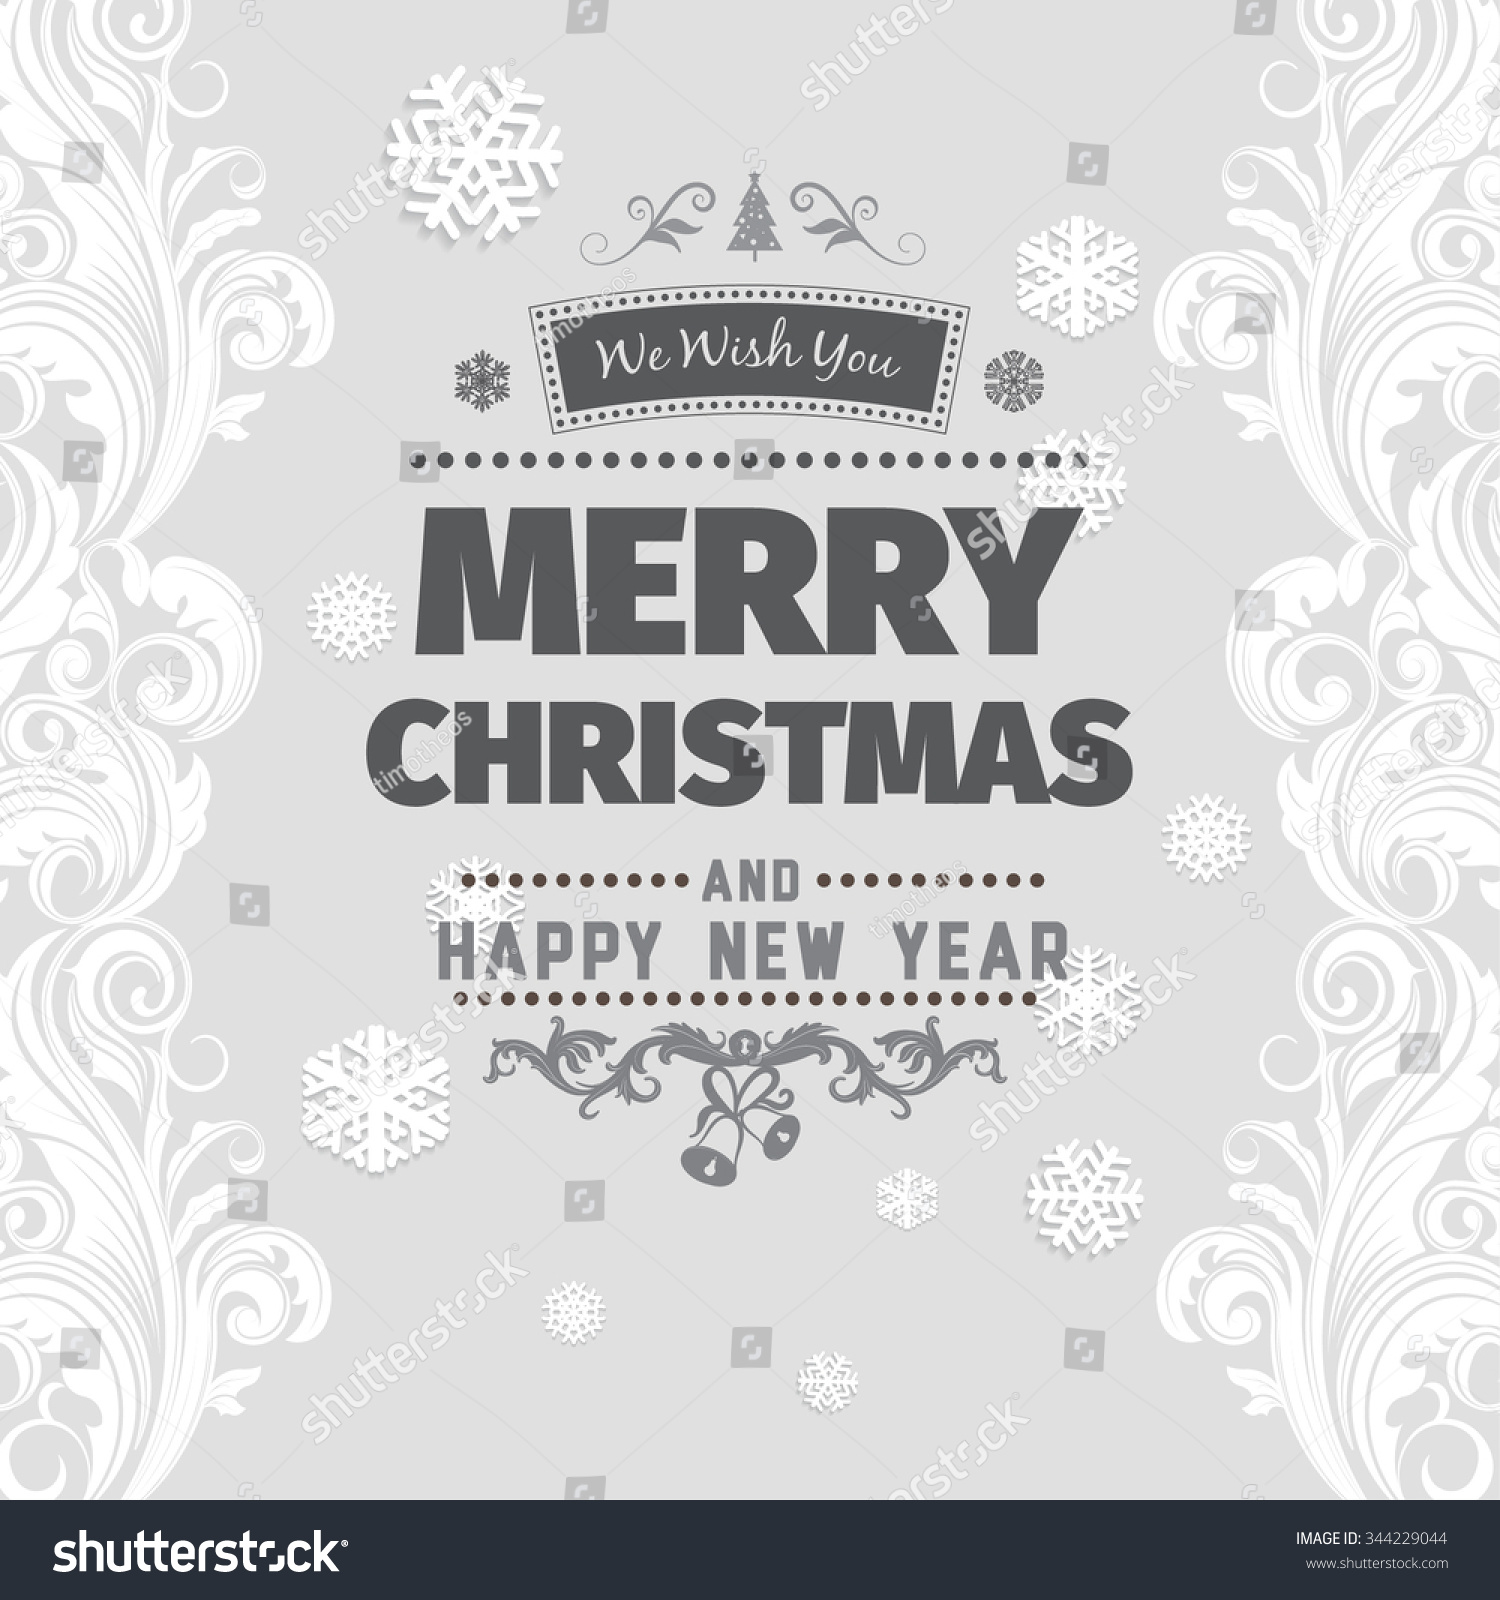 Merry christmas greetings black white card stock vector royalty merry christmas greetings black and white card with black letters on light gray background with snowflake m4hsunfo